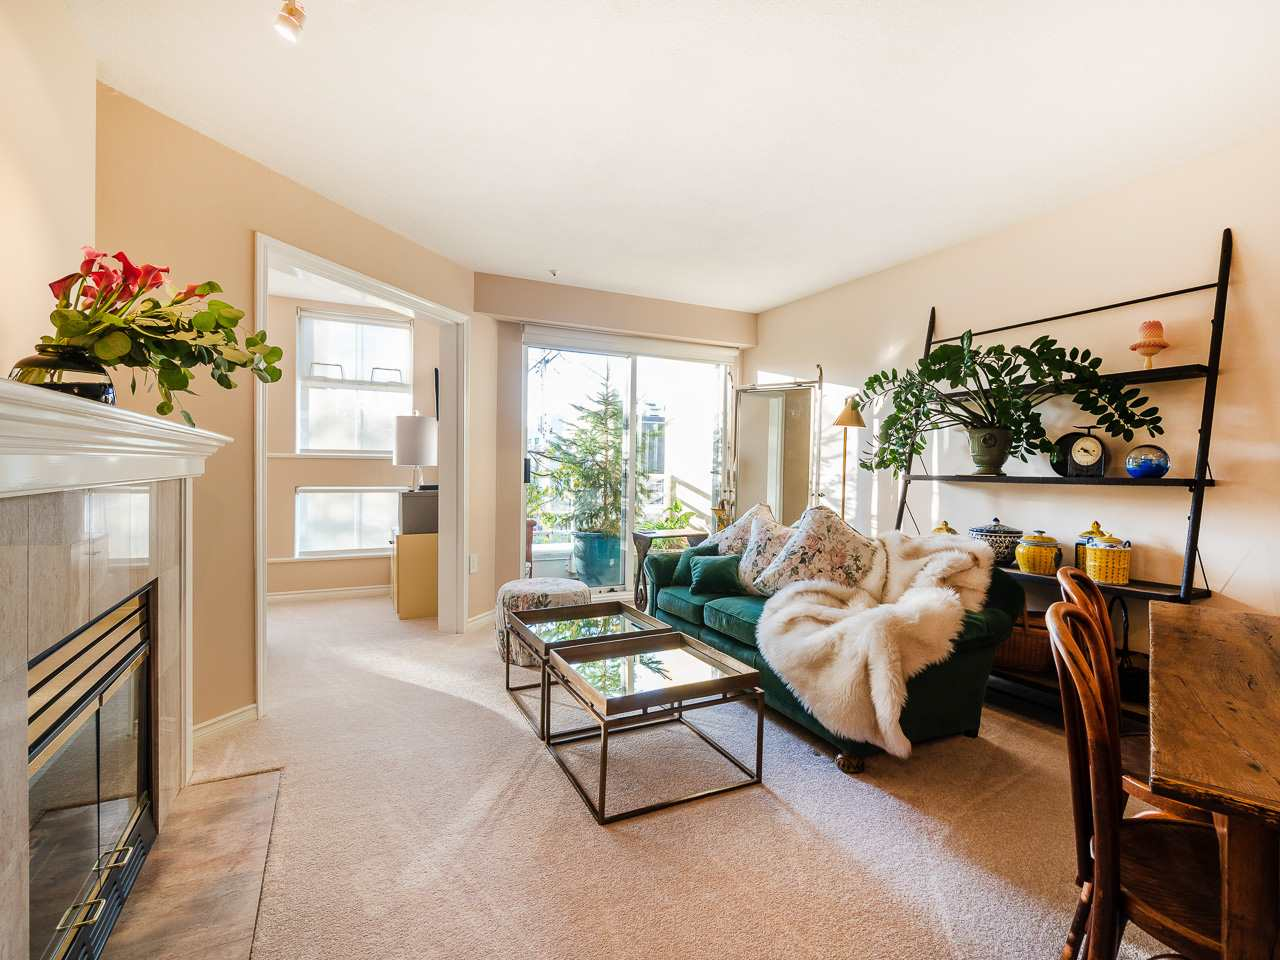 306 2105 W 42ND AVENUE - Kerrisdale Apartment/Condo for sale, 1 Bedroom (R2511504) - #4